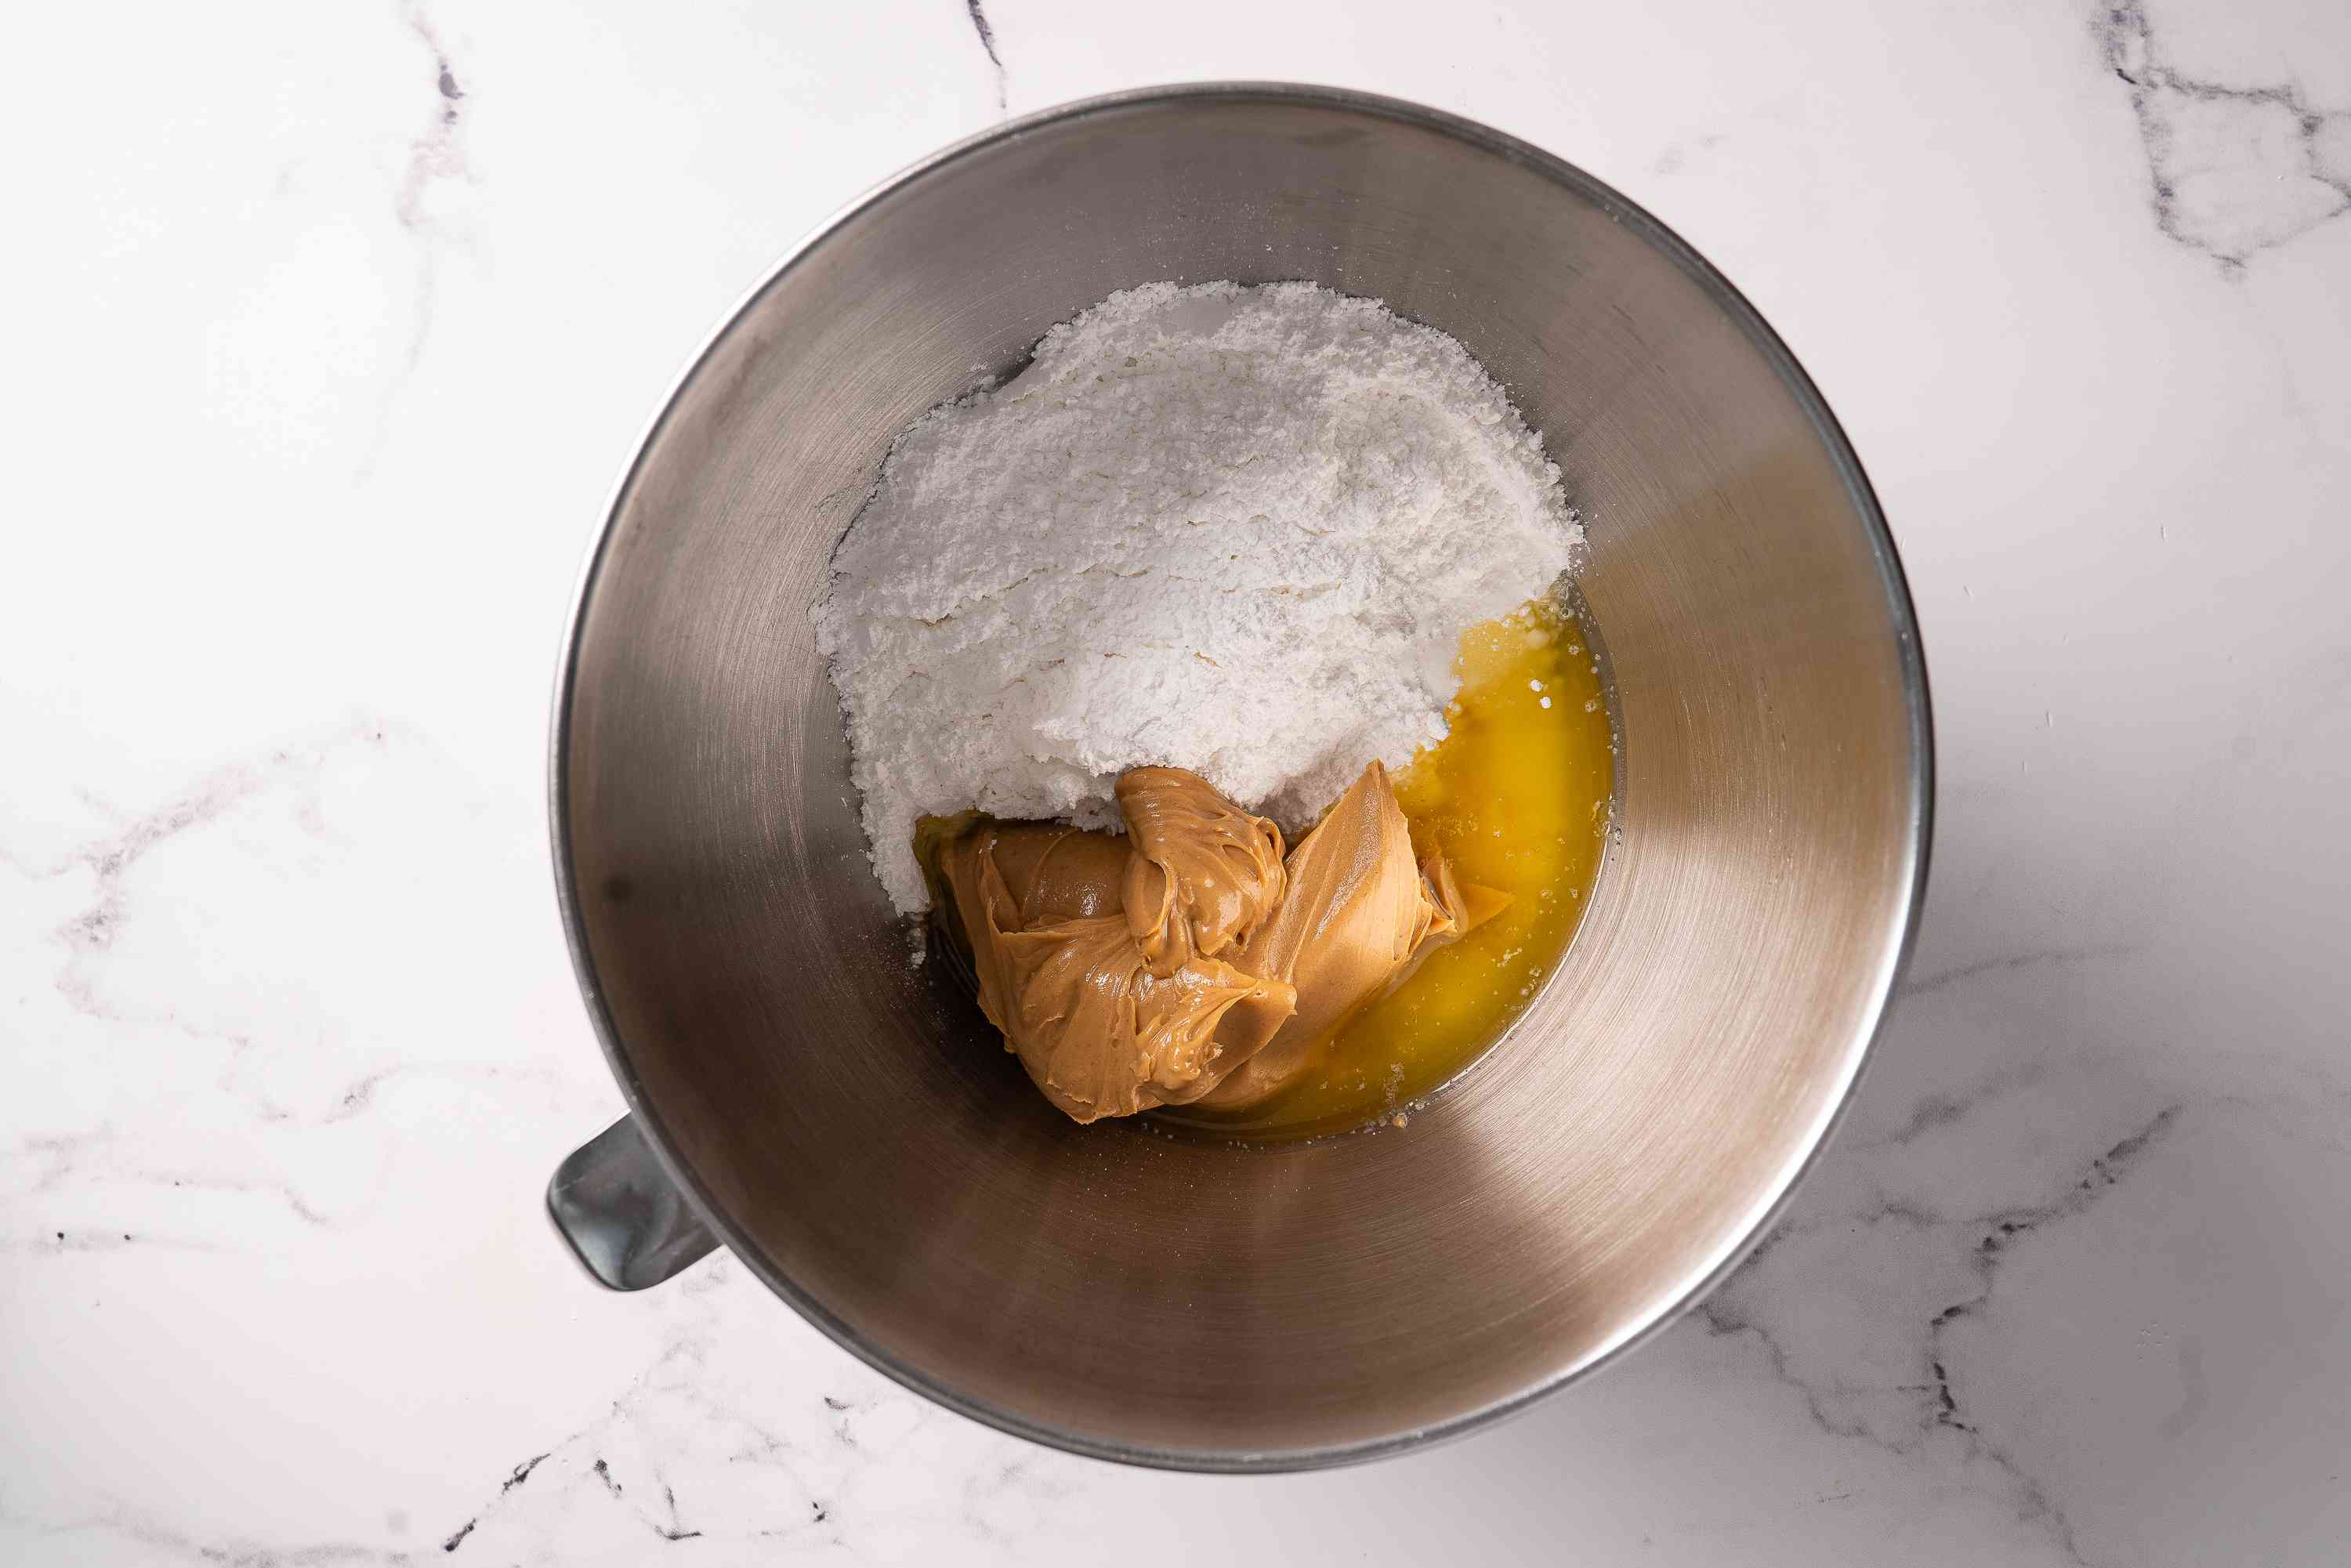 Peanut butter, butter, and powdered sugar in a mixing bowl